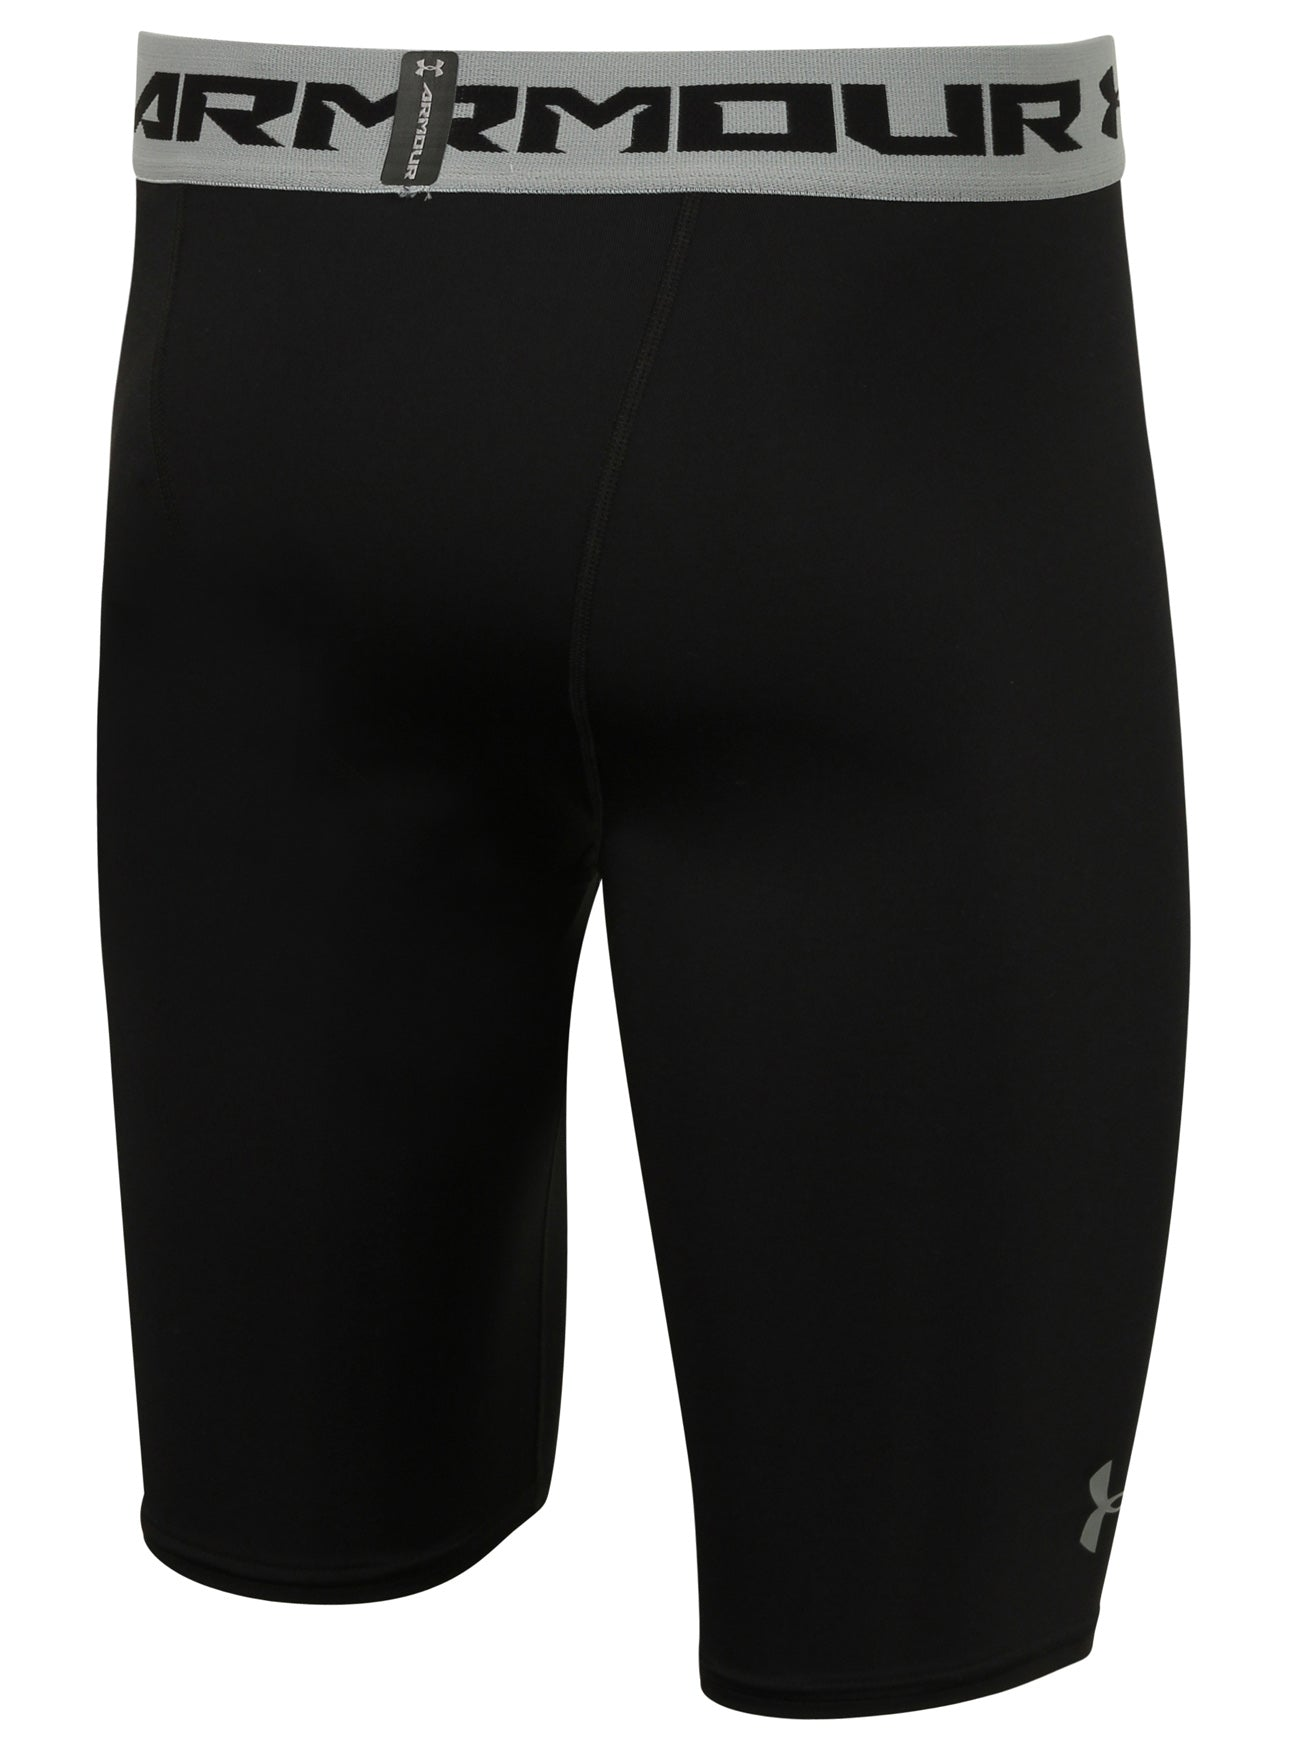 86ad9f533 ... Under Armour Men's HeatGear Long Compression Shorts 9 Inch Tights  Baselayer ...